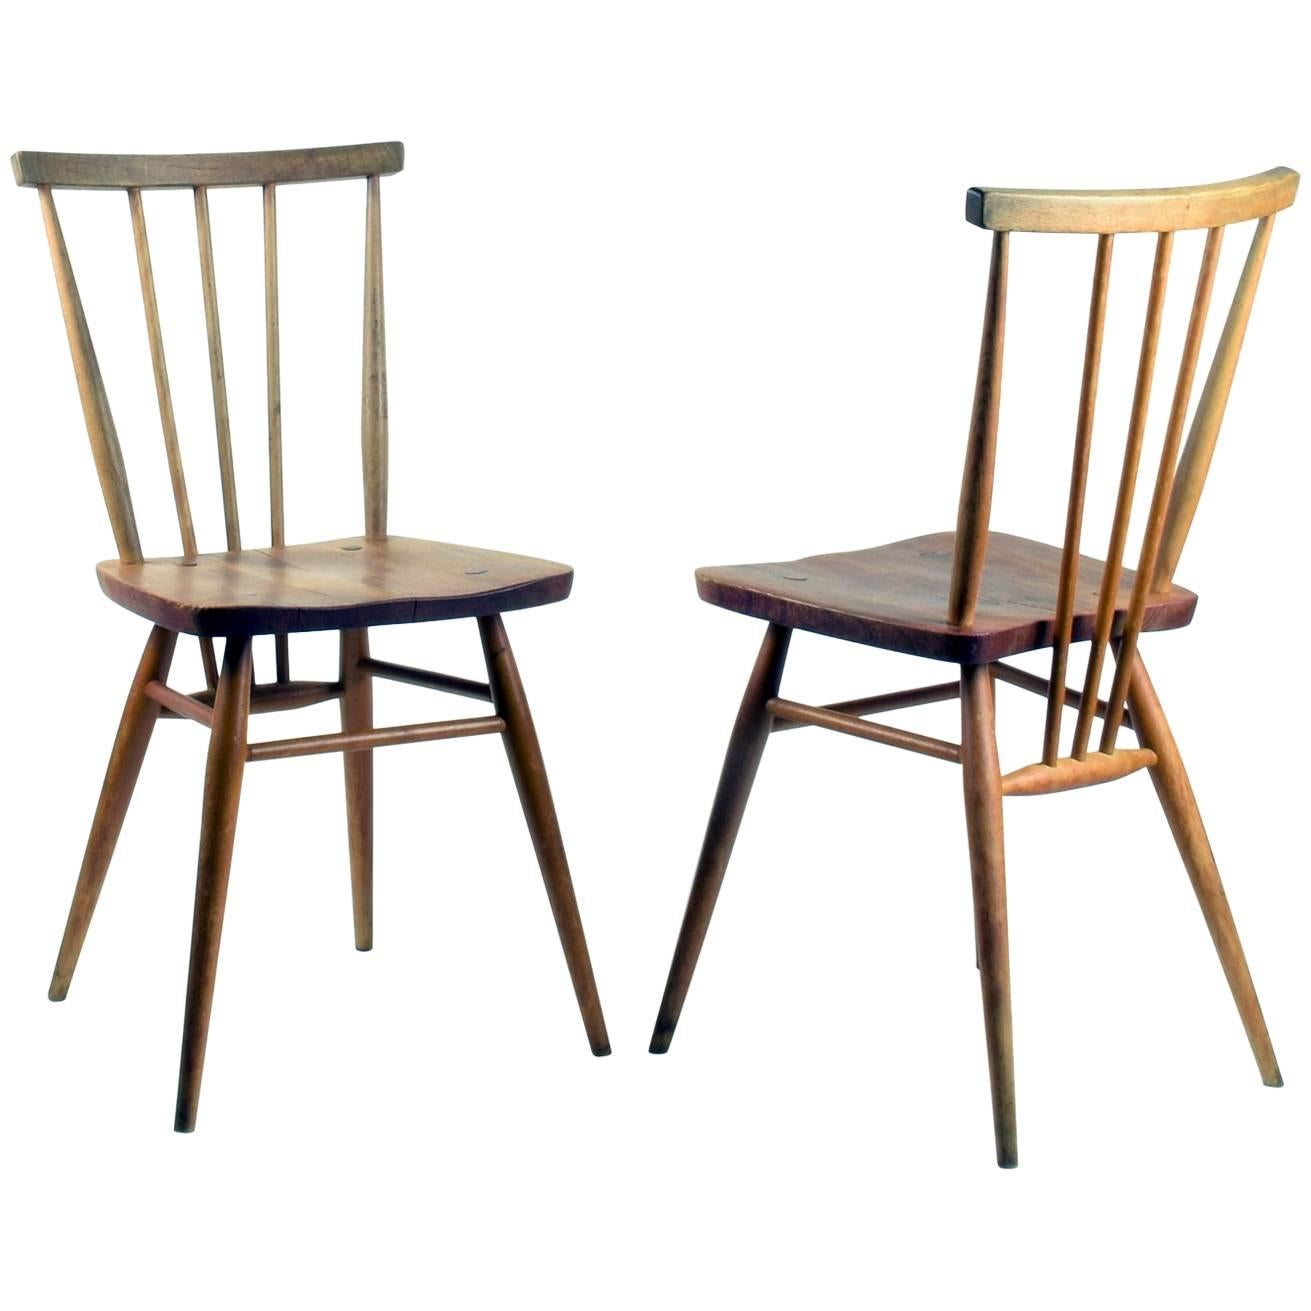 ercol chair design numbers bamboo side chairs pair of classic english midcentury windsor model 391 for